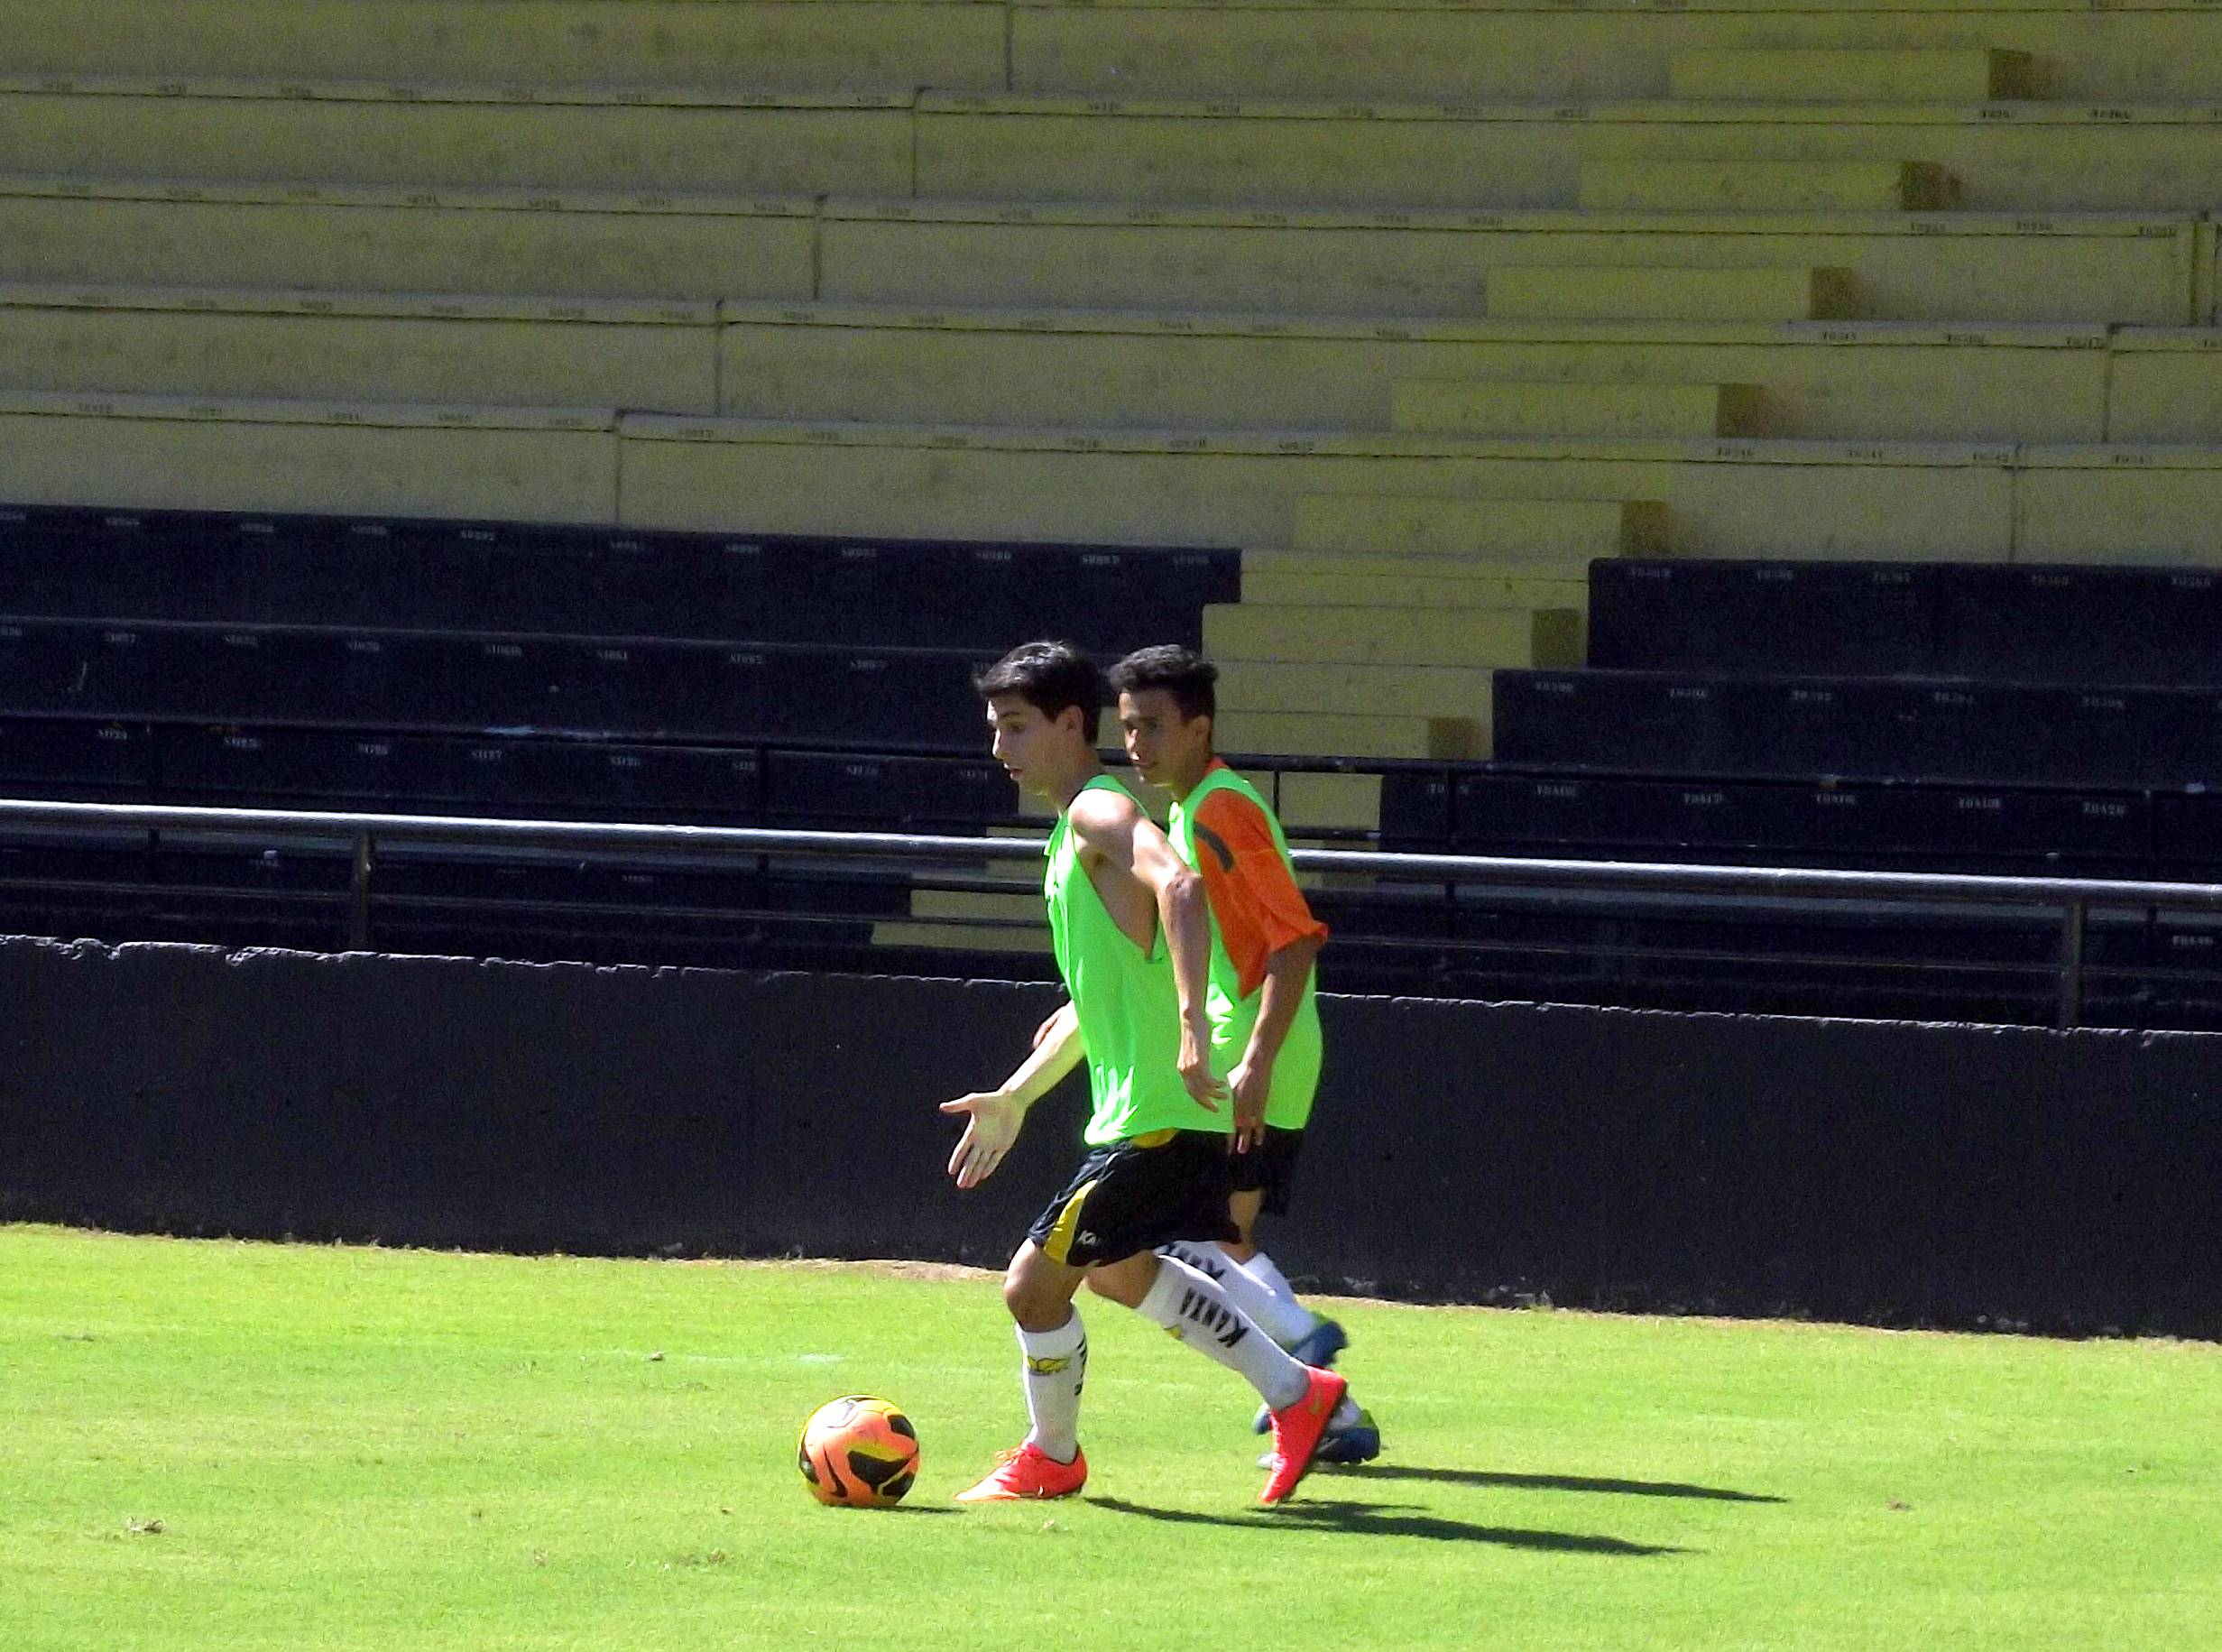 Sub-17 inicia a disputa da Copa do Brasil